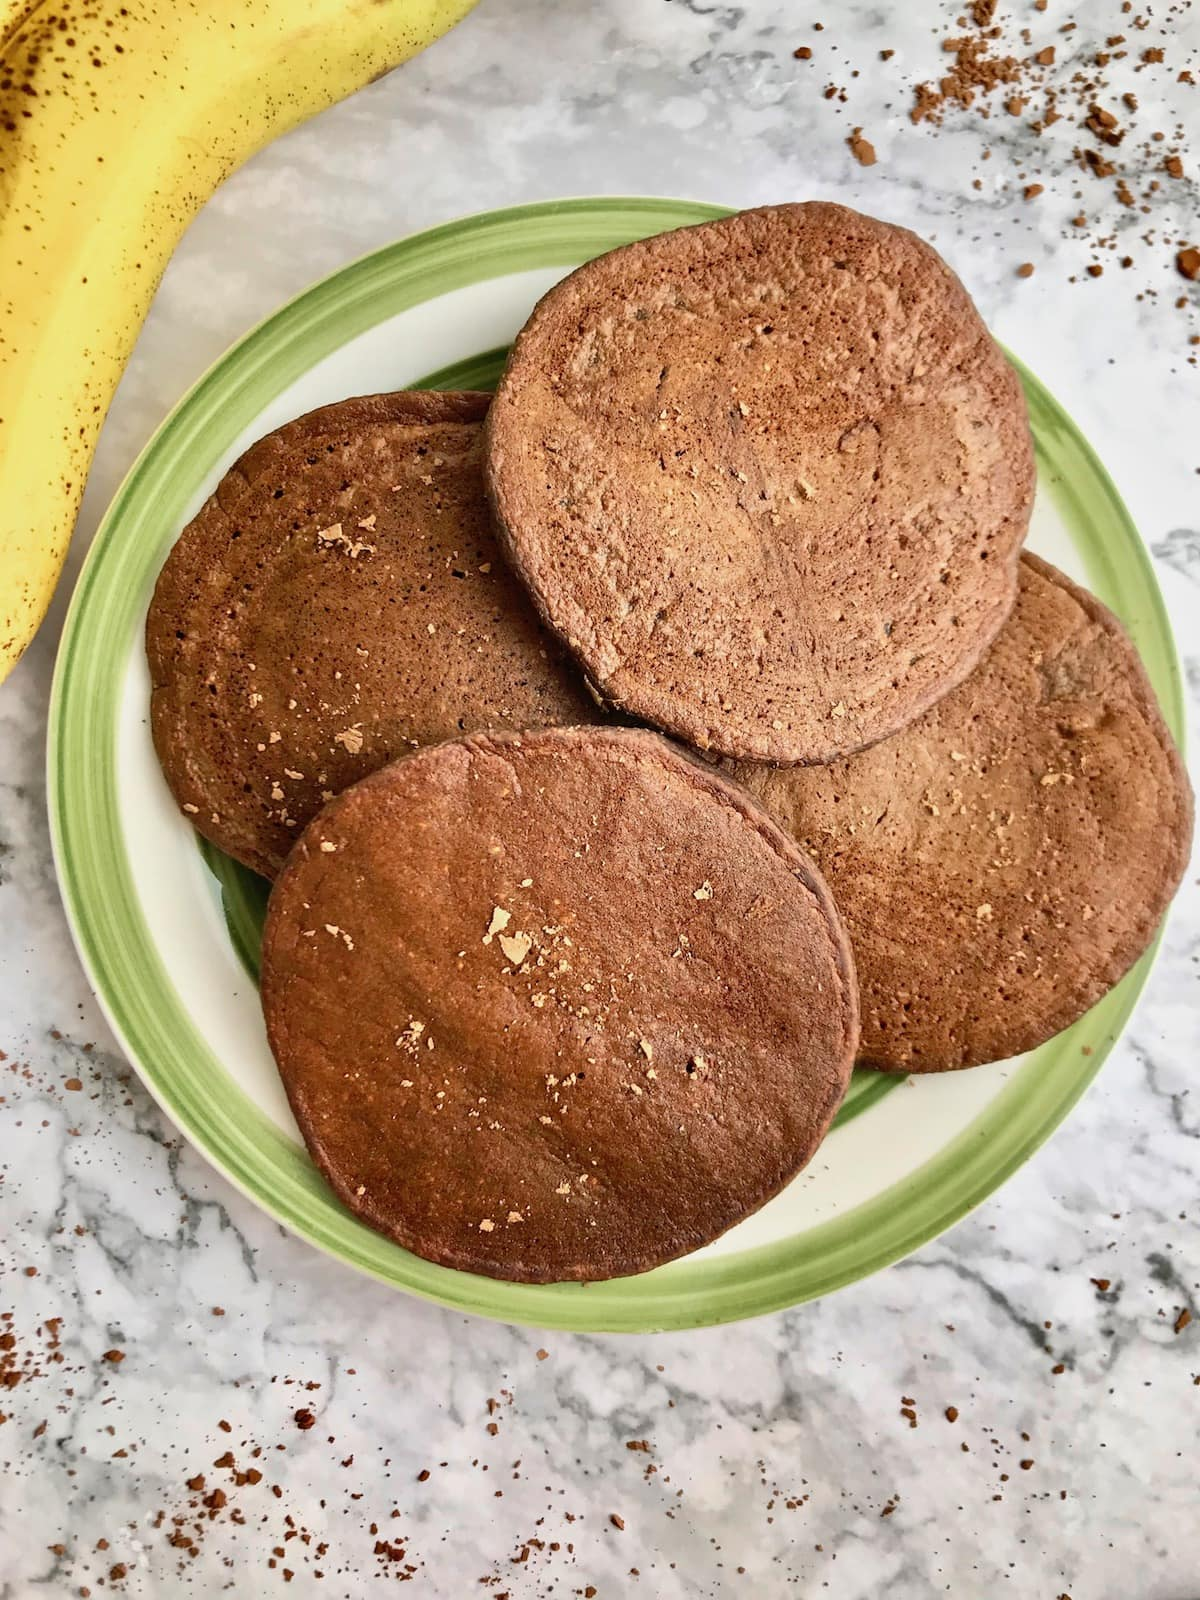 Four chocolate pancakes on a plate, with a banana next to it and cacao powder sprinkled on top.